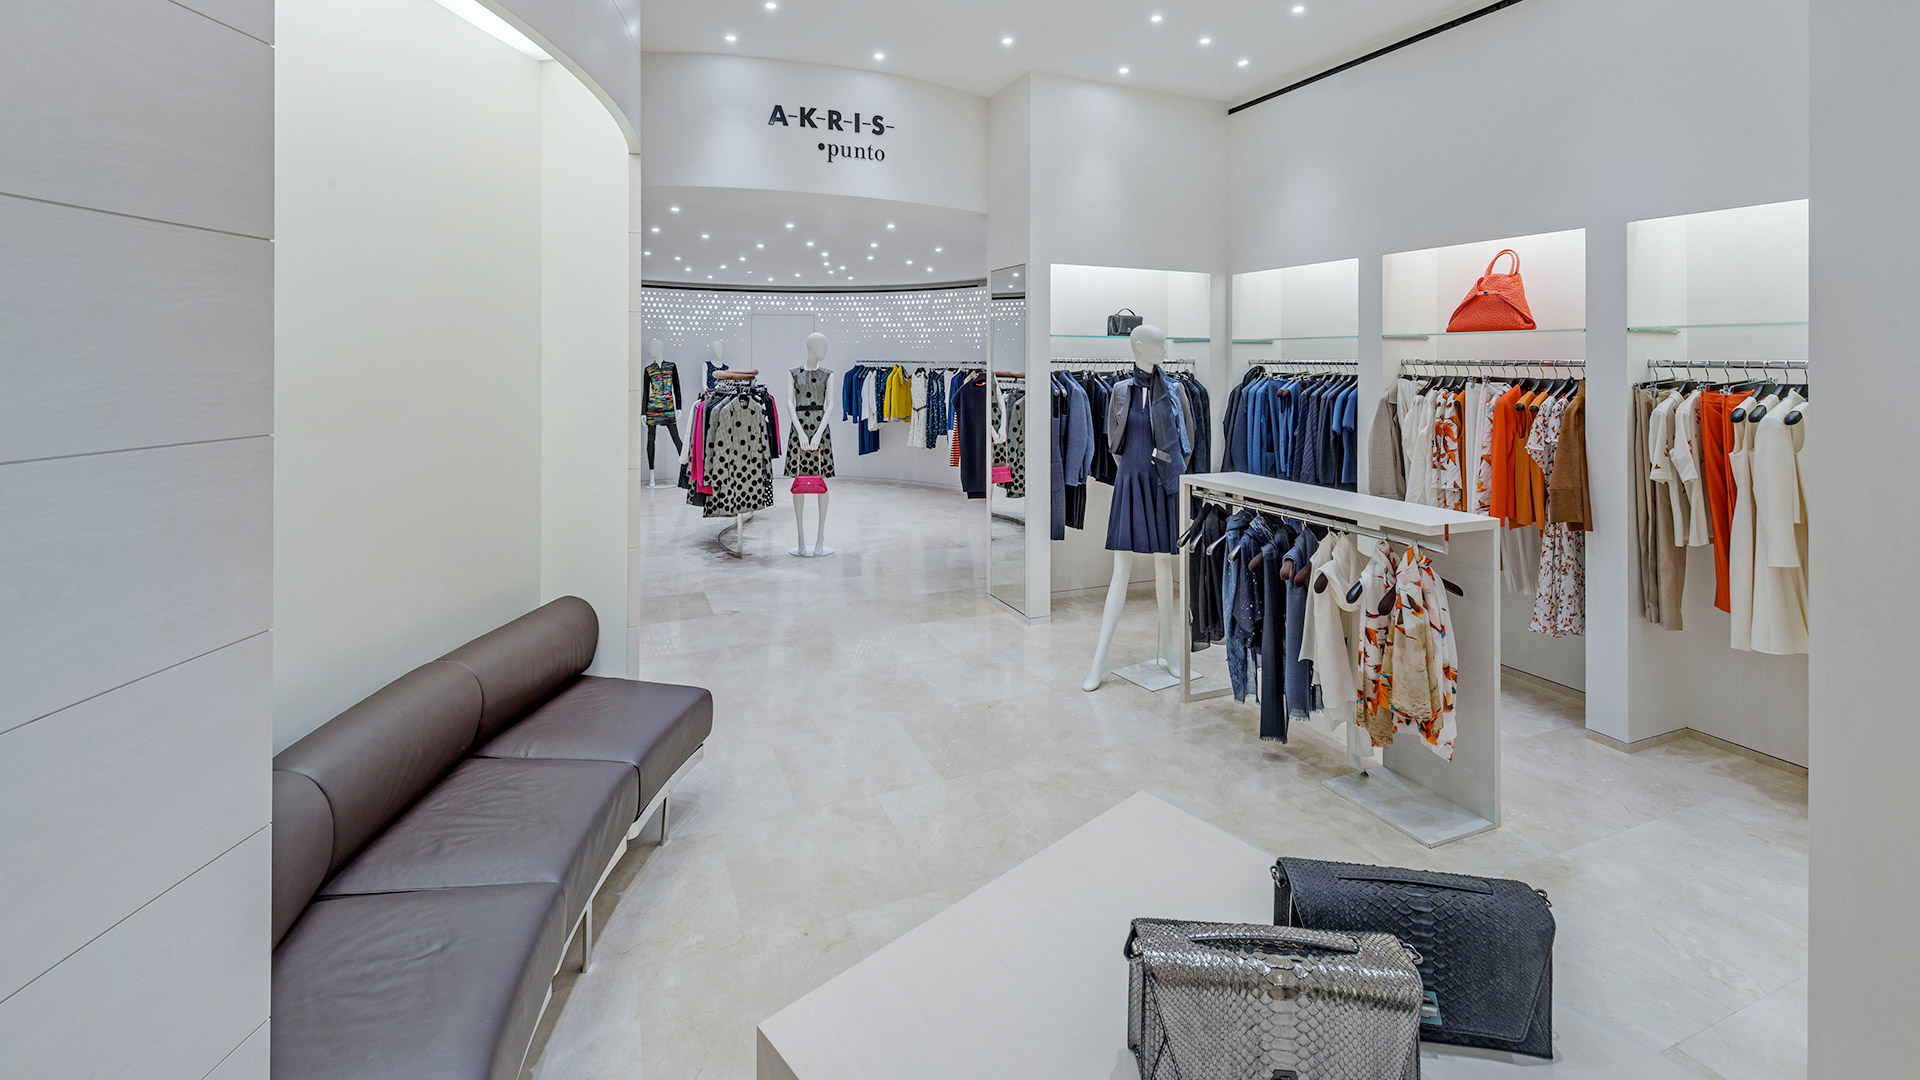 Commercial Retail Interior Design Houston Floor Display Showroom curved bench